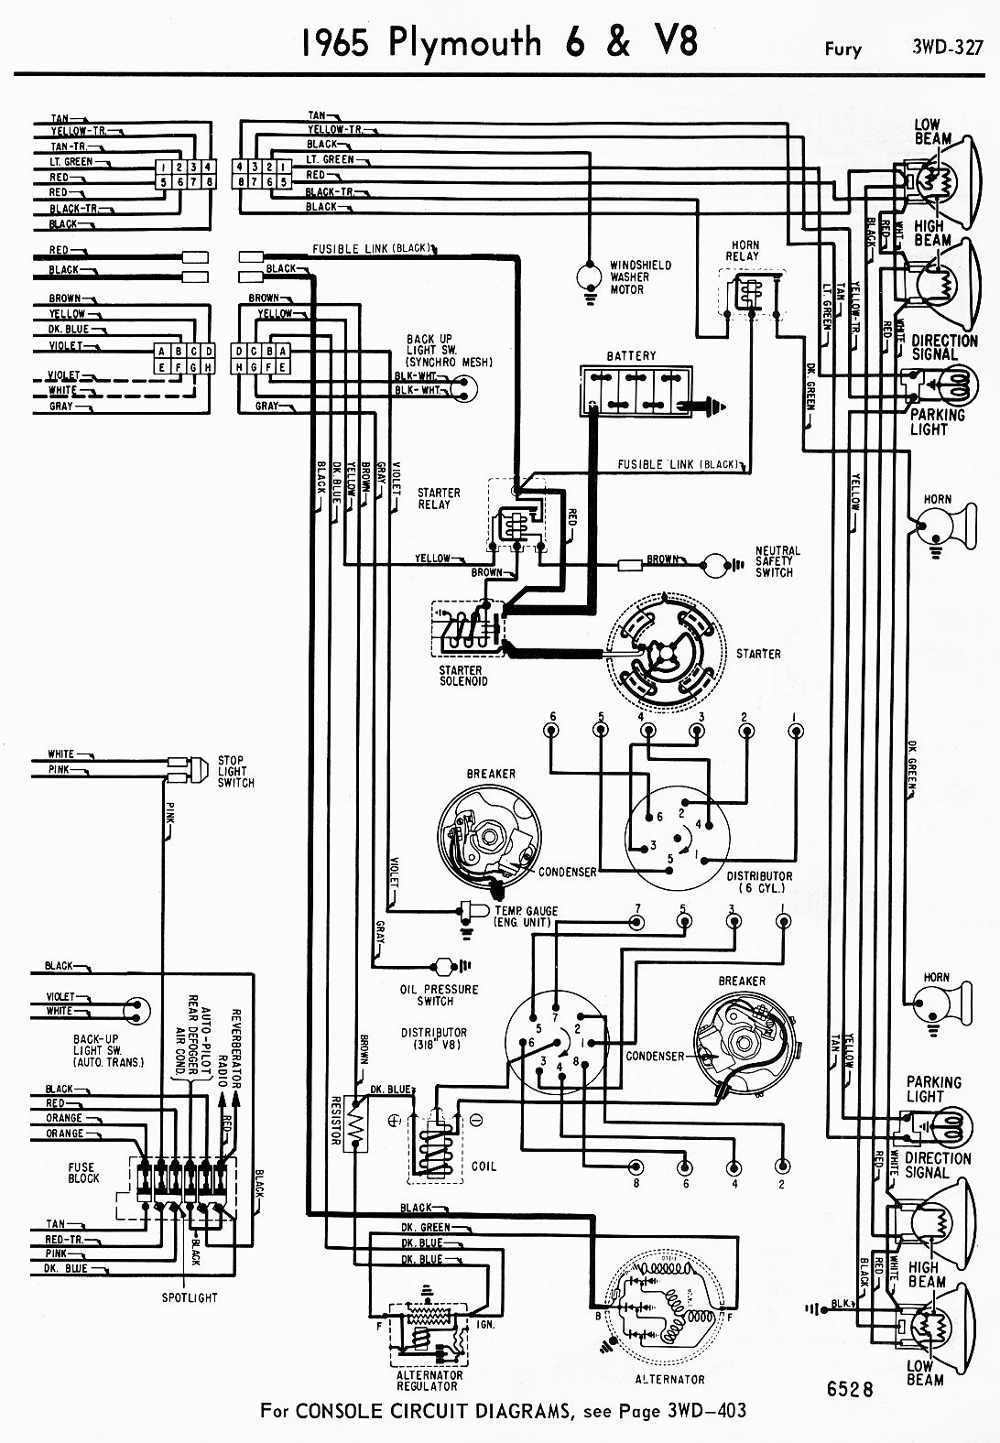 1965 Mustang Wiring Harness Diagram Libraries Best Ford Free Plymouth Valiant For You U20221960 Site